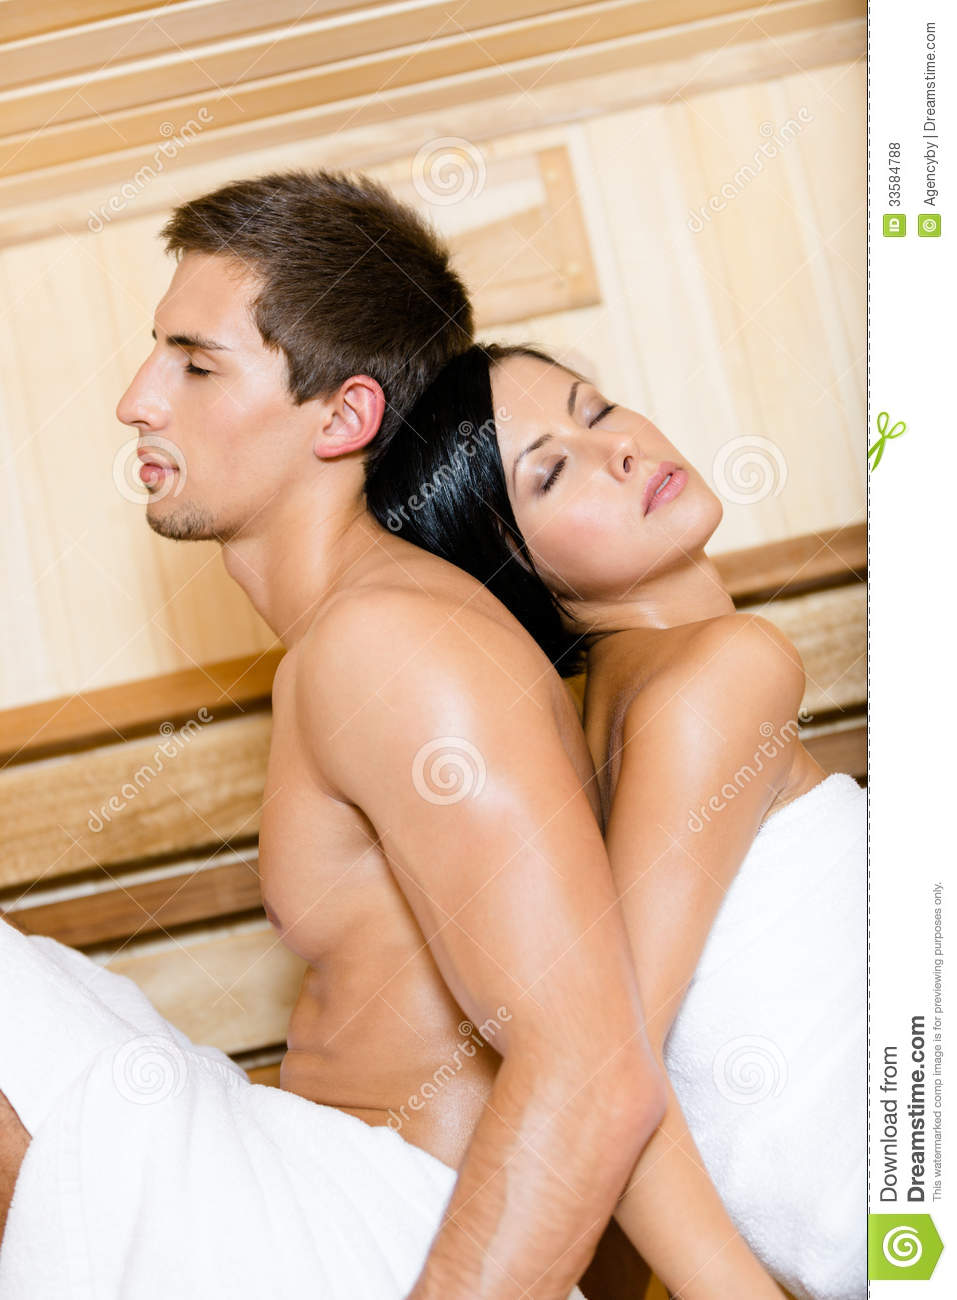 Man And Women Having Sex Naked